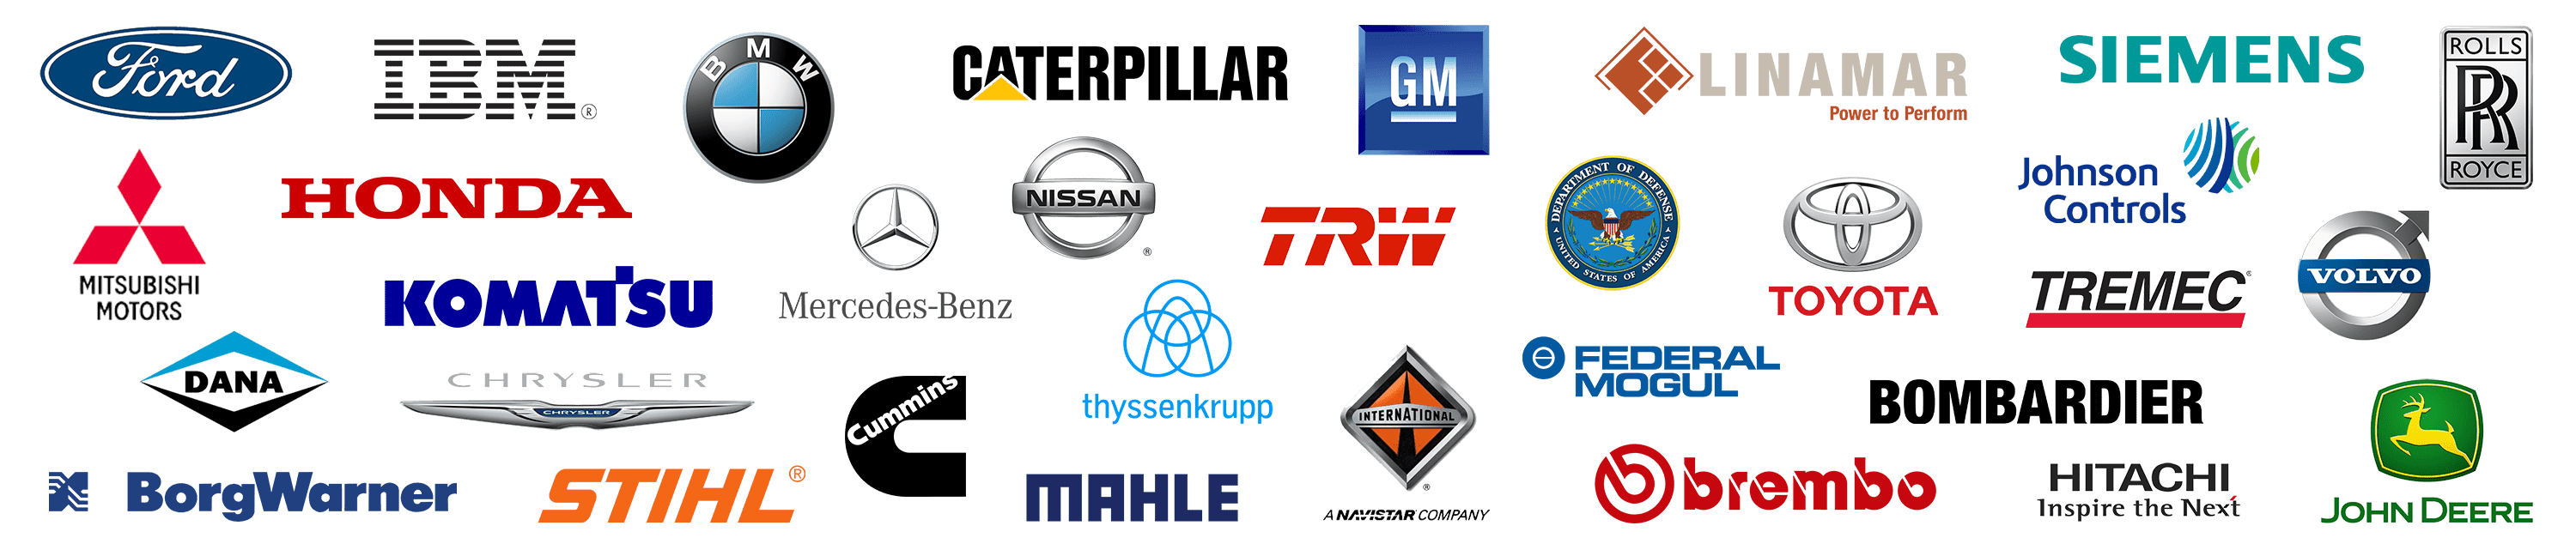 ARMOR products are trusted by a variety of companies - a collection of company logos